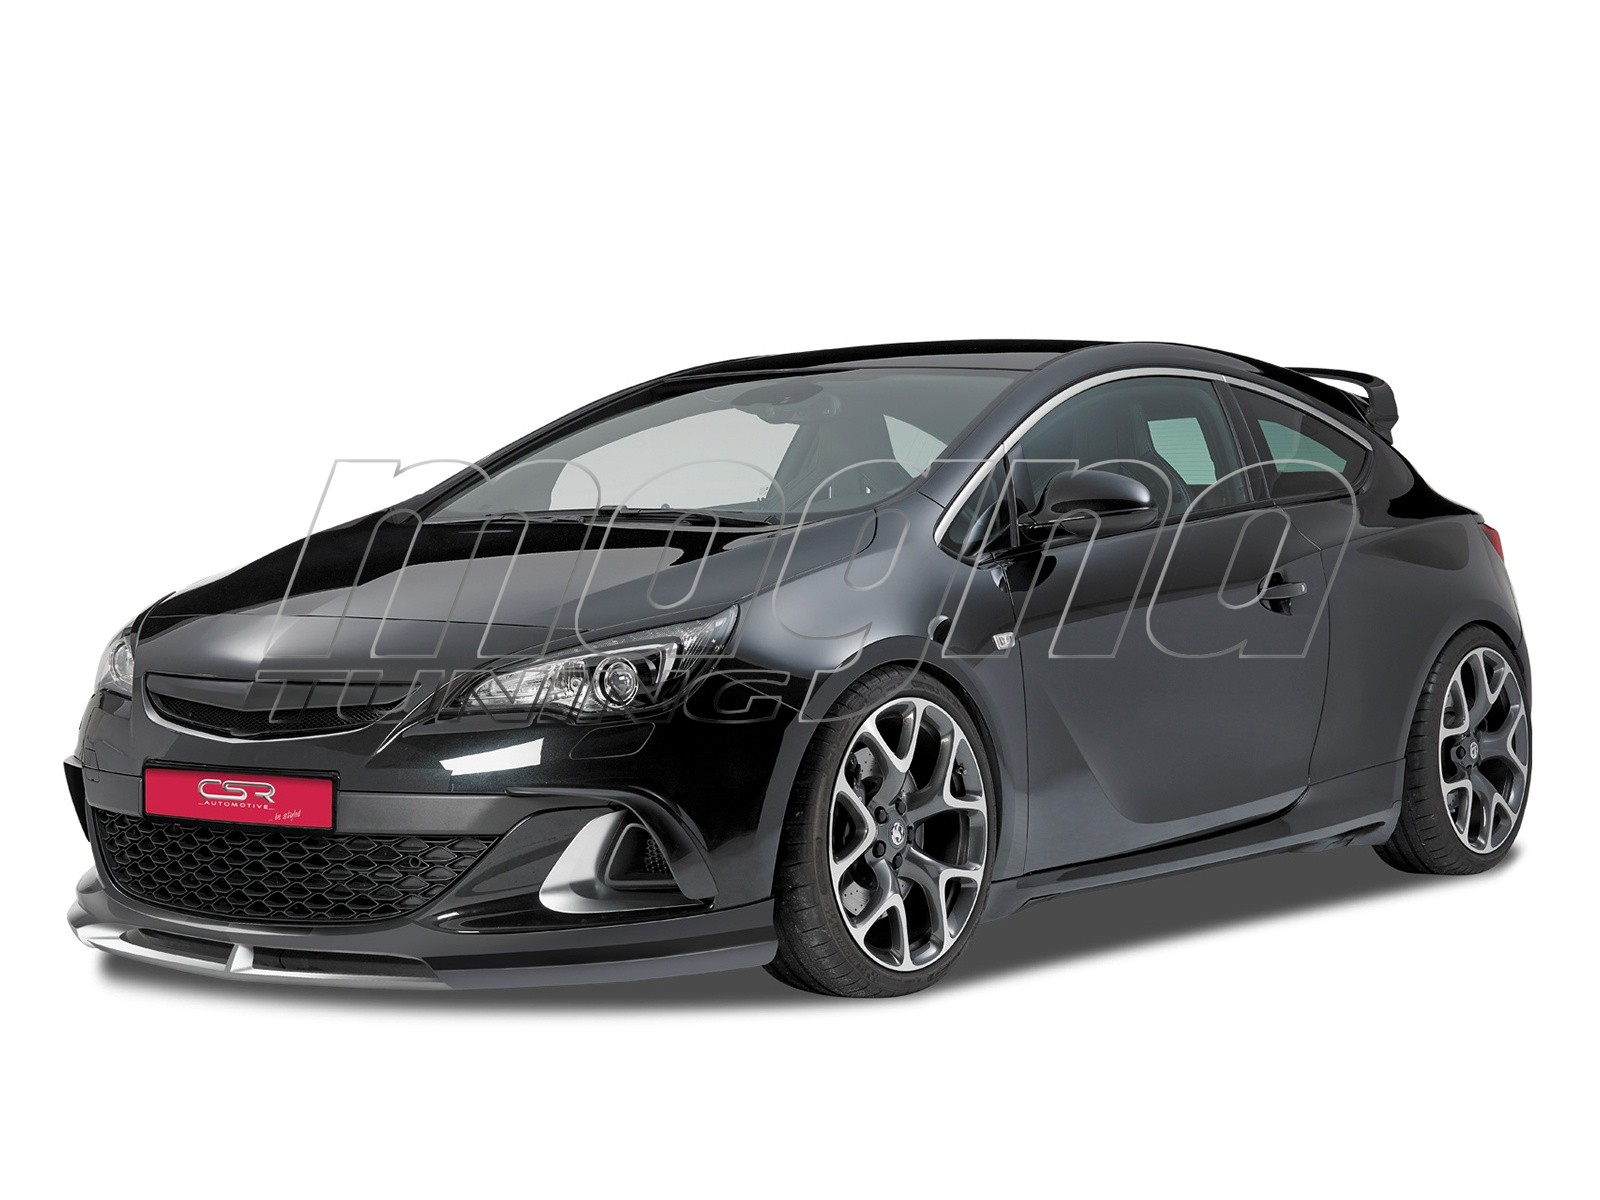 opel astra j gtc opc crono front bumper extension. Black Bedroom Furniture Sets. Home Design Ideas